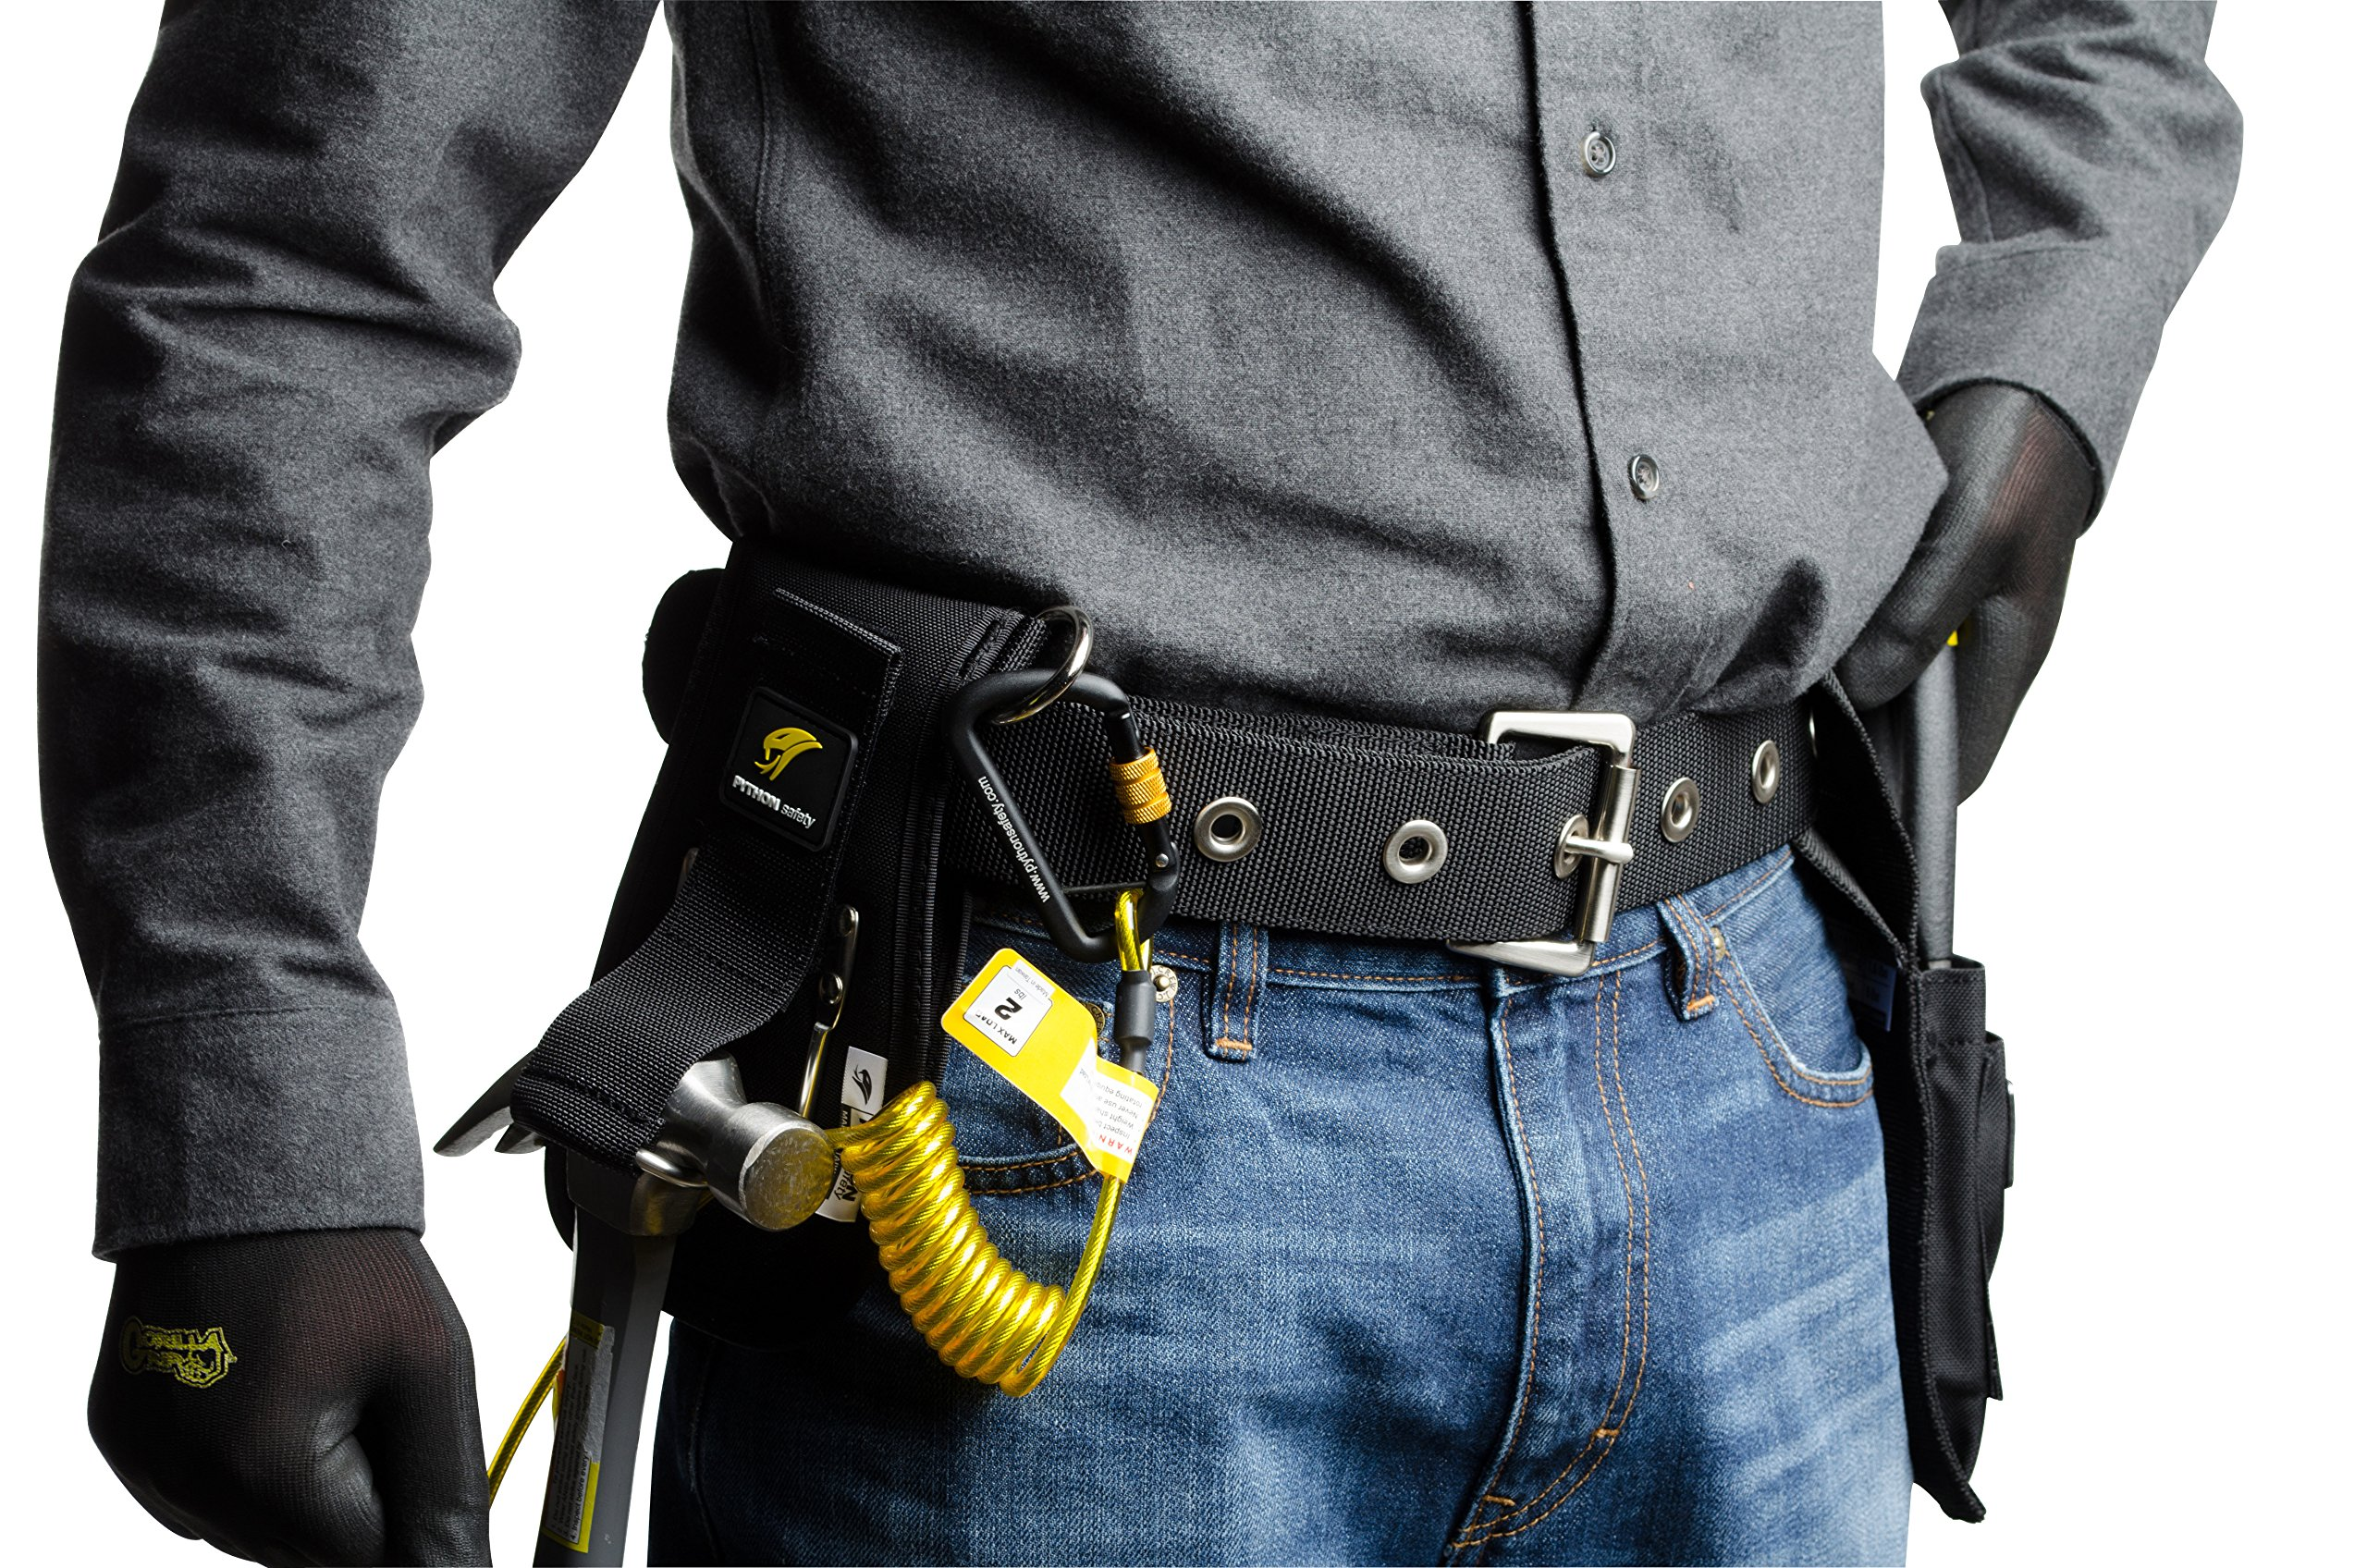 3M DBI-SALA Fall Protection For Tools, 1500093,Hook andLoop Closure Strap w/1'' D-Rings On Both Sides Of Holster Allowing Tools To Be Tethered By User Preference by 3M Personal Protective Equipment